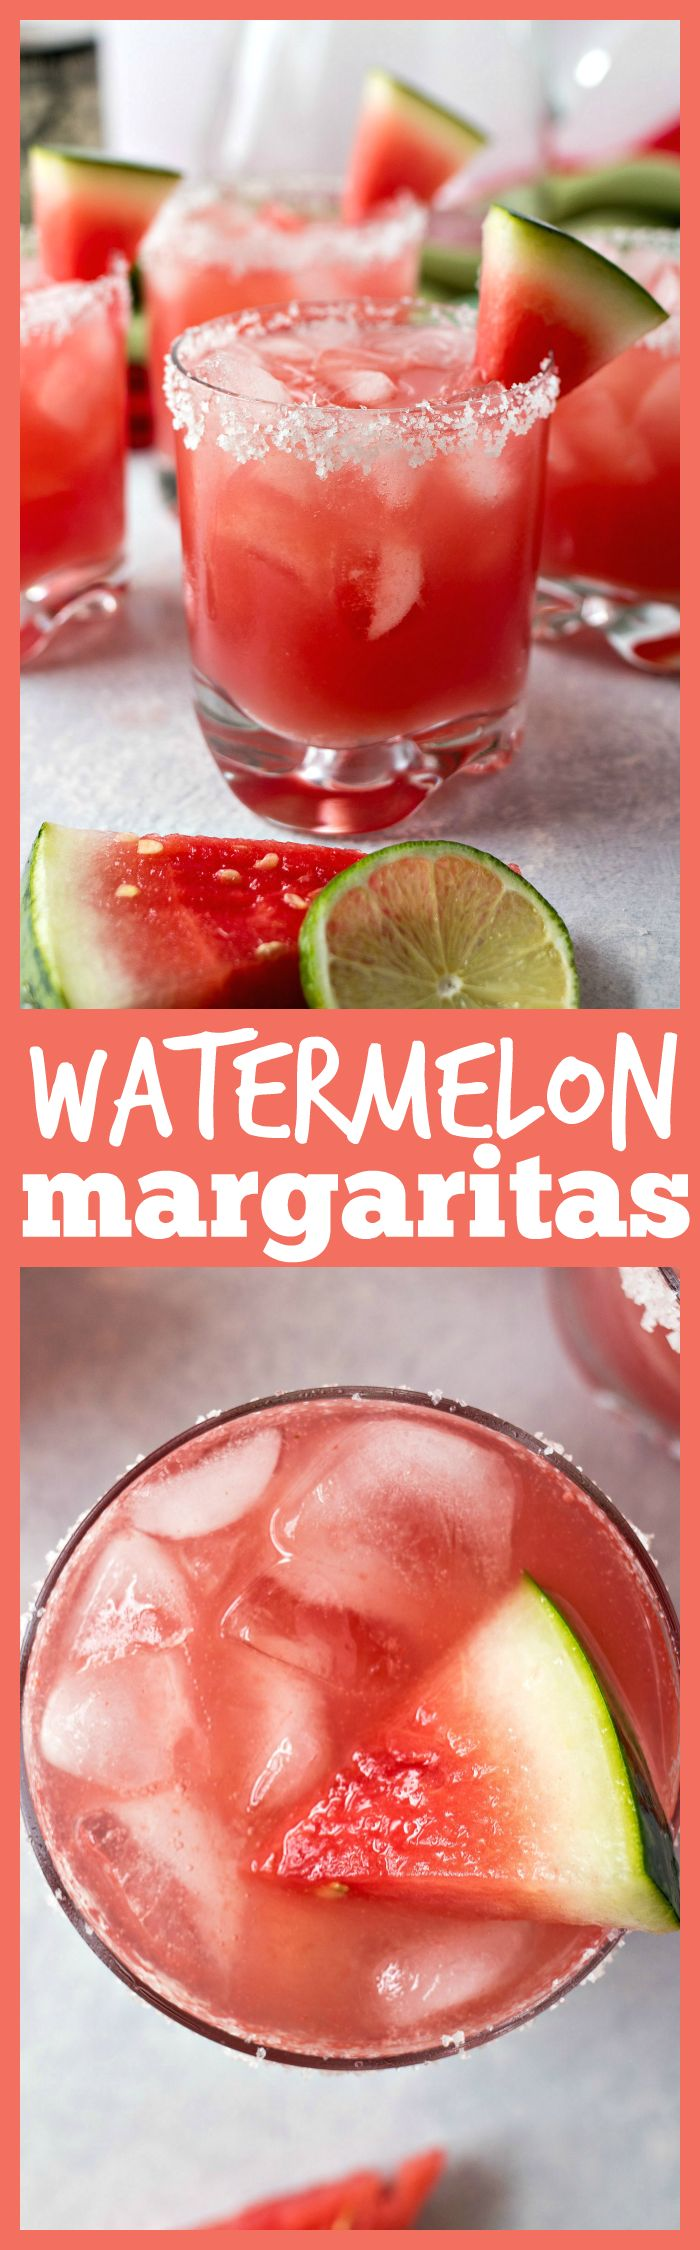 Watermelon Margaritas – A refreshing margarita that is made with fresh watermelon juice, triple sec, fresh lime juice, and silver tequila. The perfect drink for summer parties and barbecues!